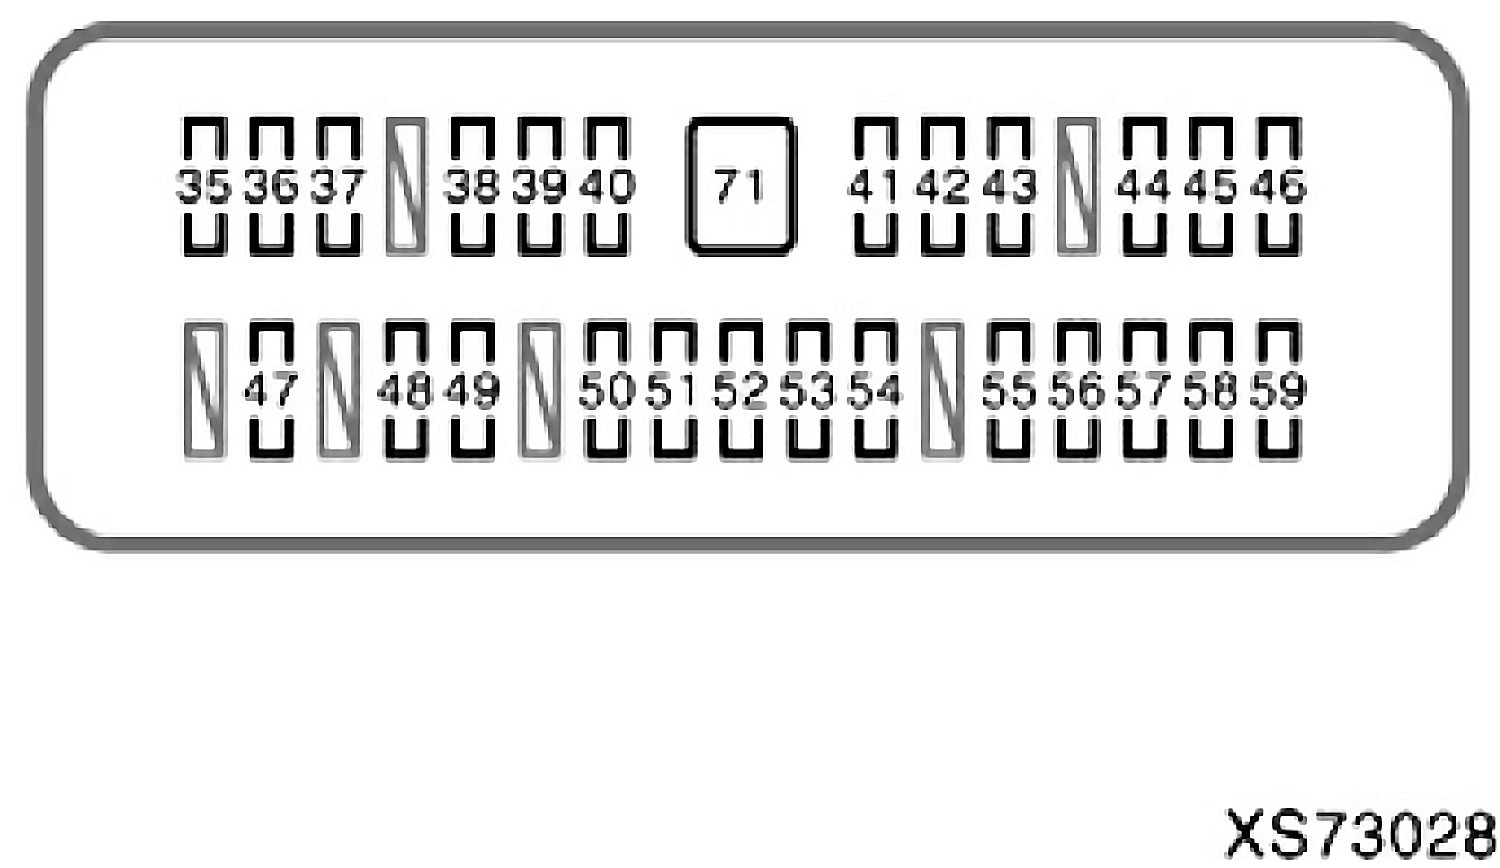 07 Tundra Fuse Box Diagram Wiring Library 2007 Toyota Location